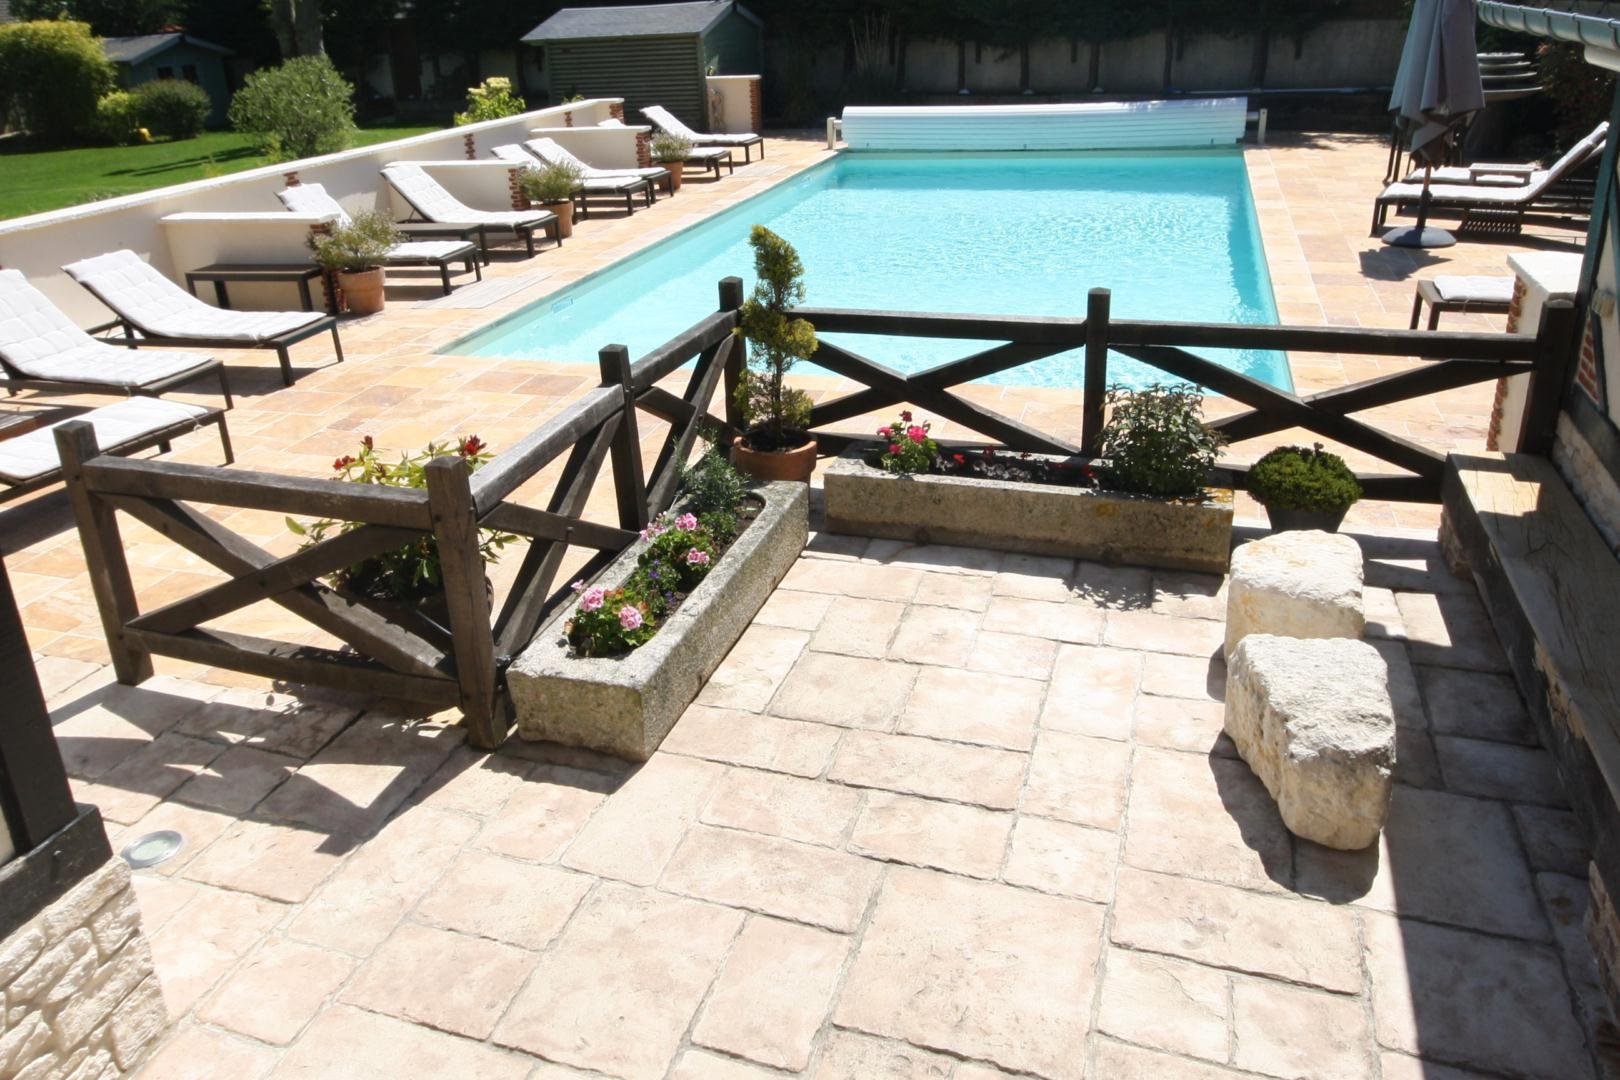 Best chambre dhote luxe normandie piscine gallery matkin for Chambre d hote piscine